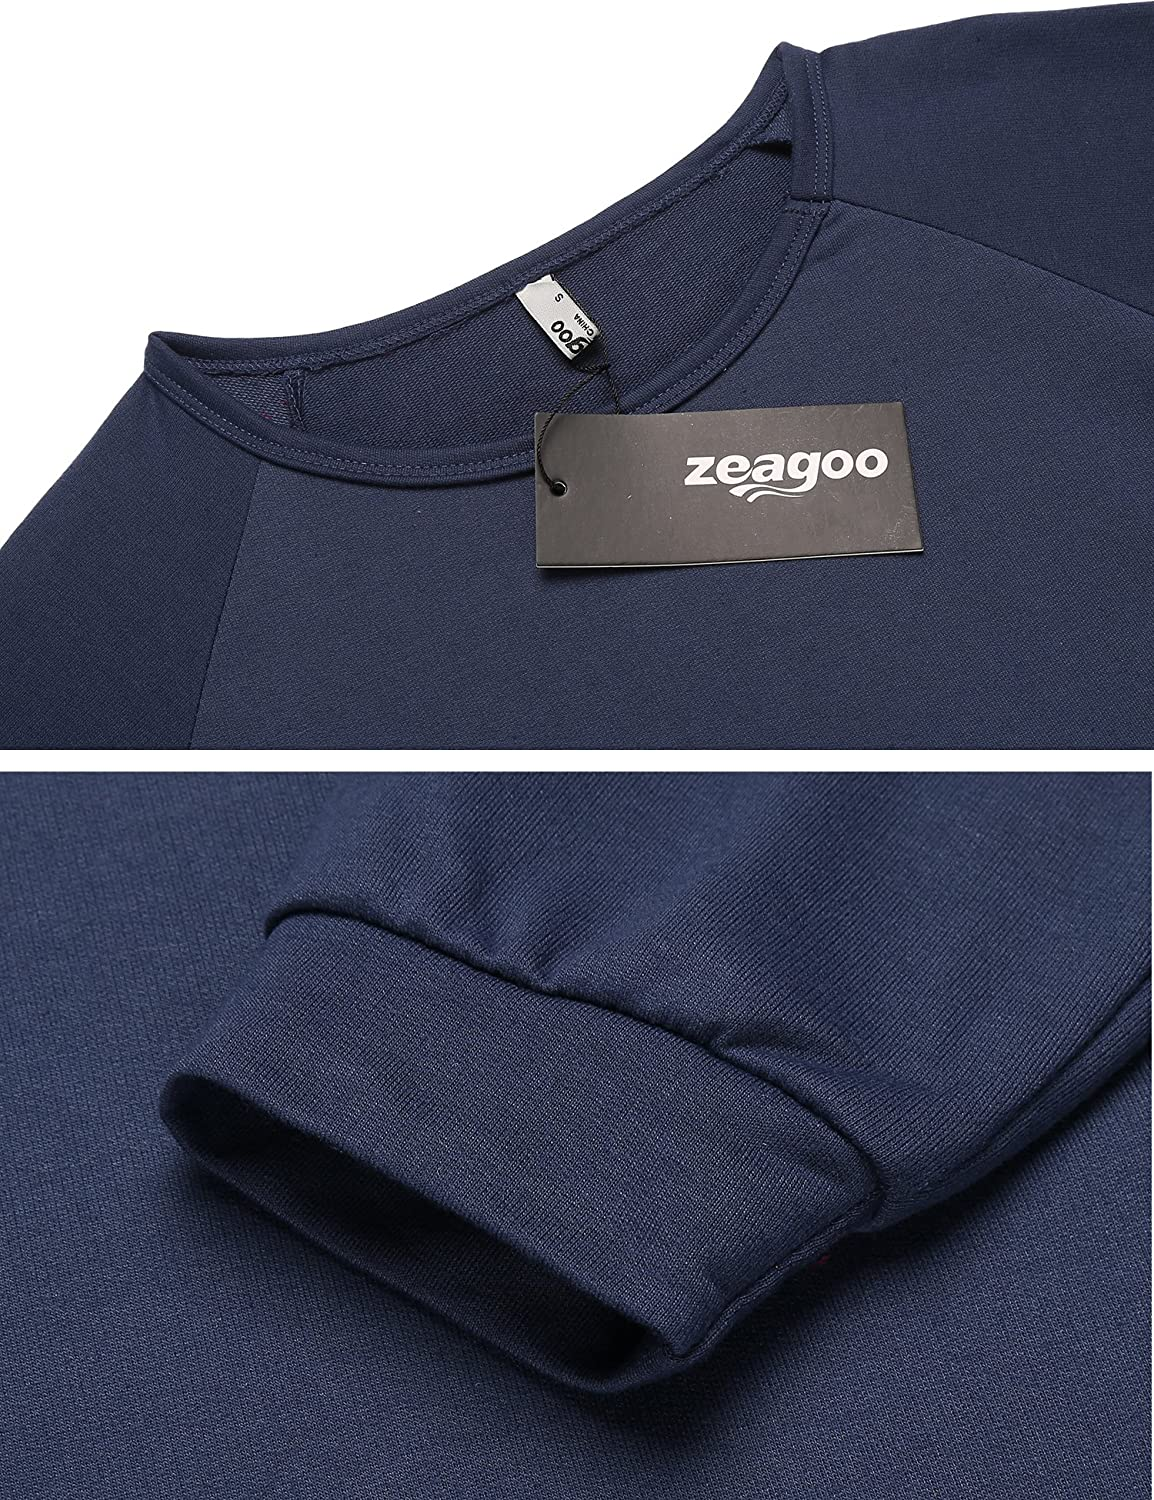 Zeagoo Women Casual Long Sleeve Pockets Pullover Sweatshirt Tunic Tops Long Blouse